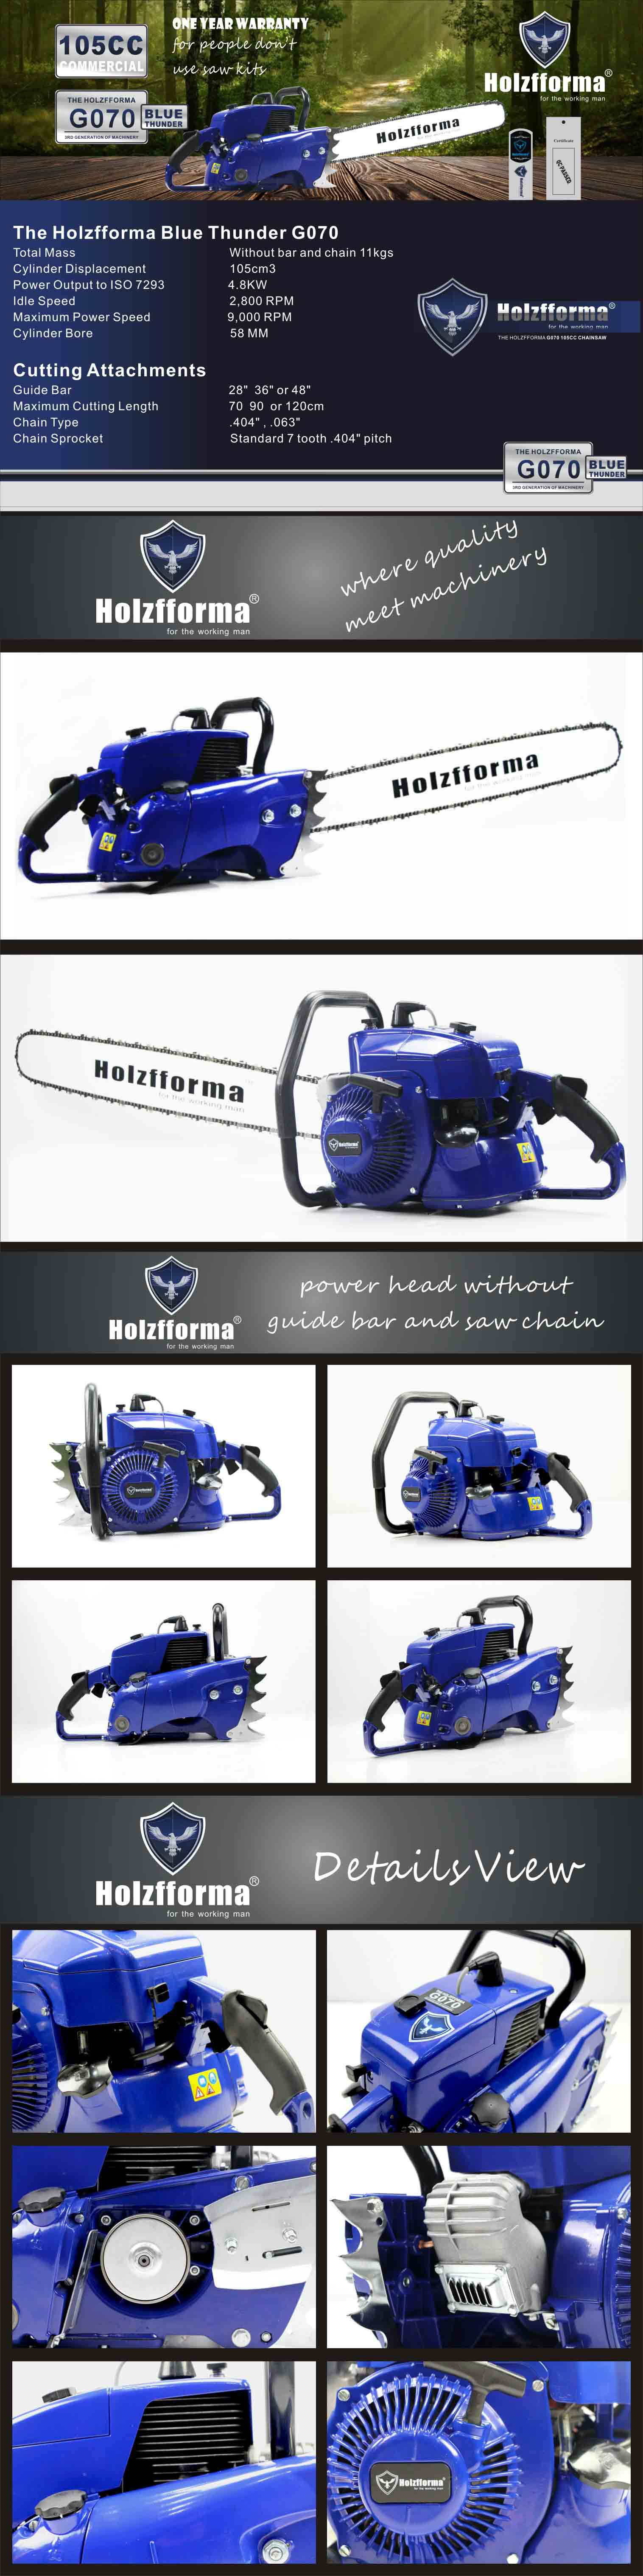 105cc Holzfforma® Blue Thunder G070 Gasoline Chain Saw Power Head Only  Without Guide Bar and Saw Chain All Parts Are Compatible With 070 090  MAGNUM